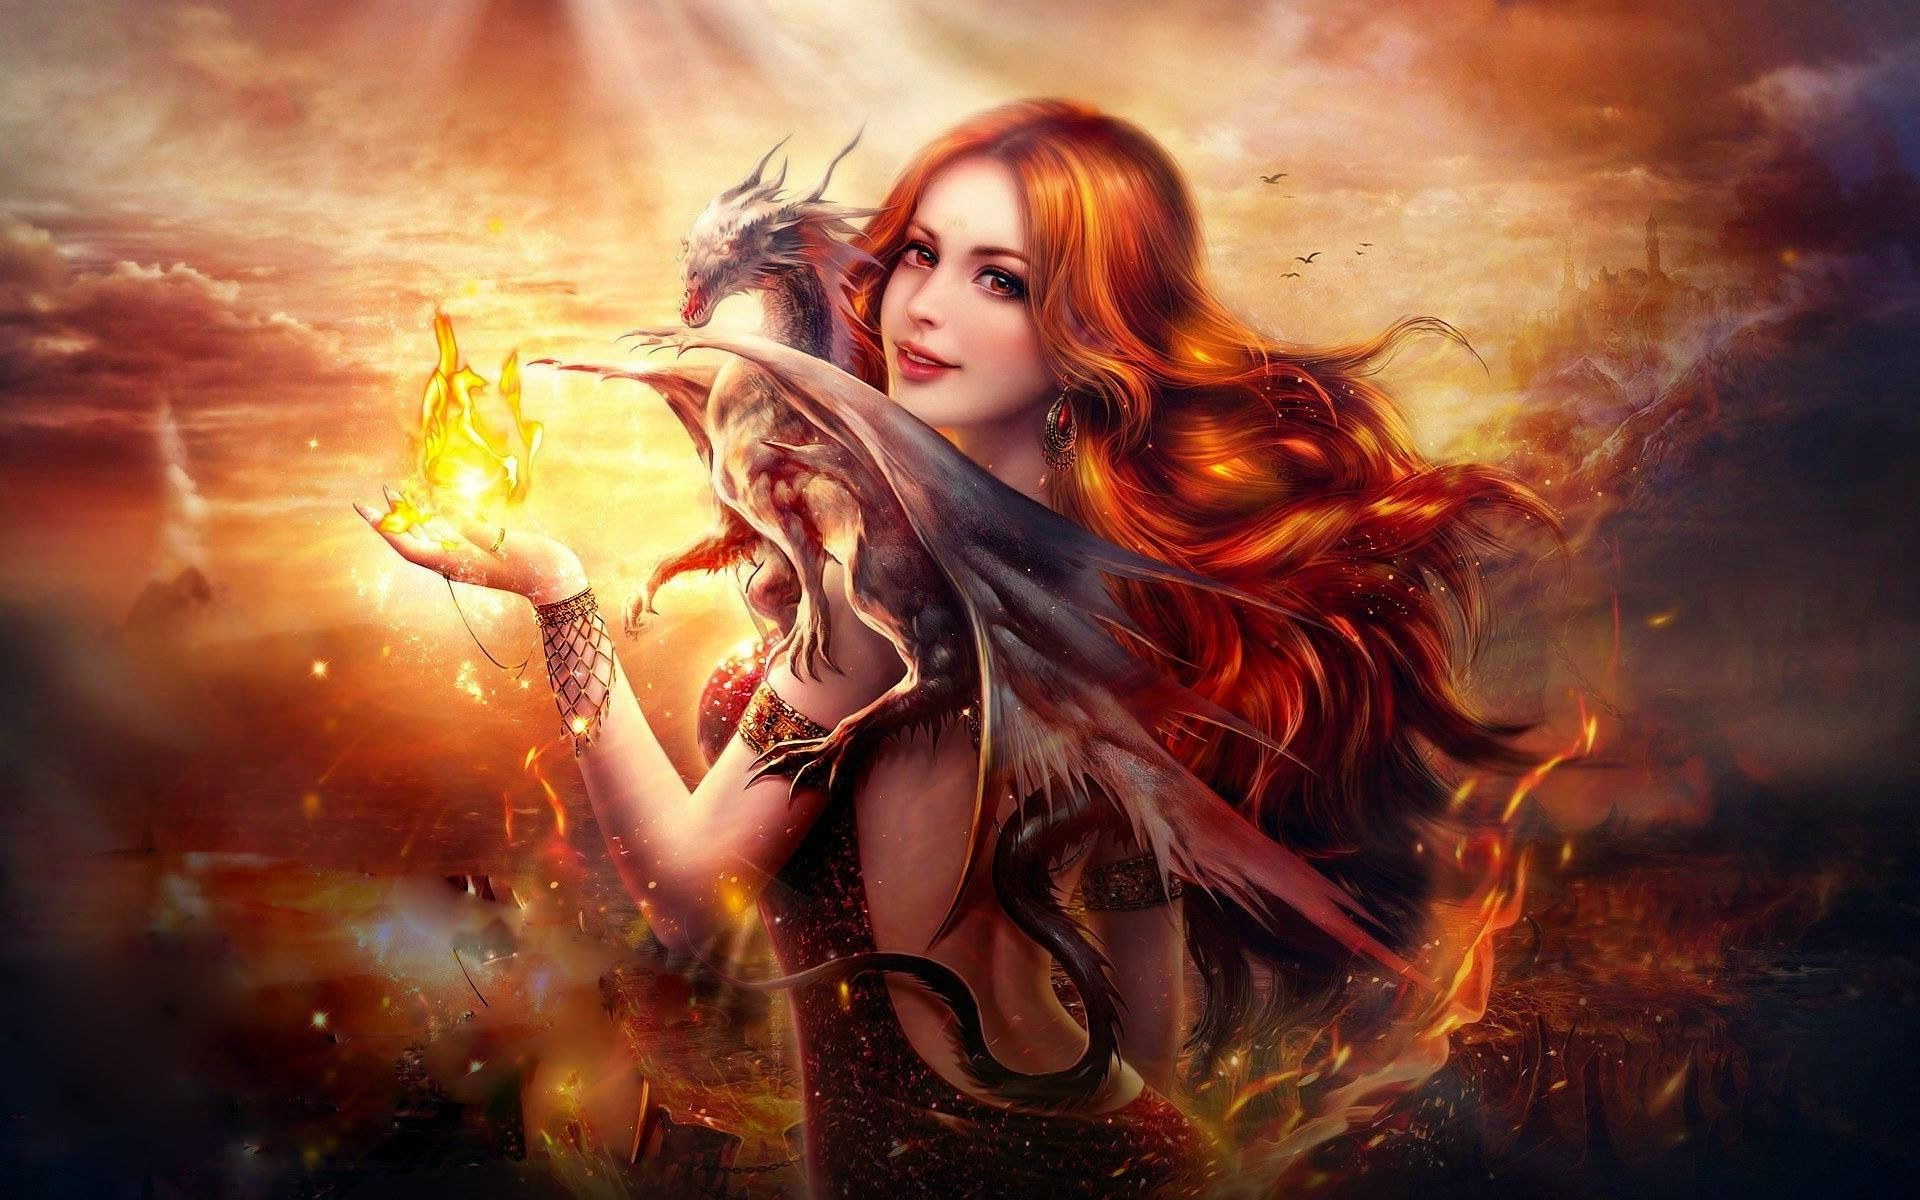 1920x1200 Dragon Fire Fantasy Girl Wallpapers   HD Wallpapers   ID #16615